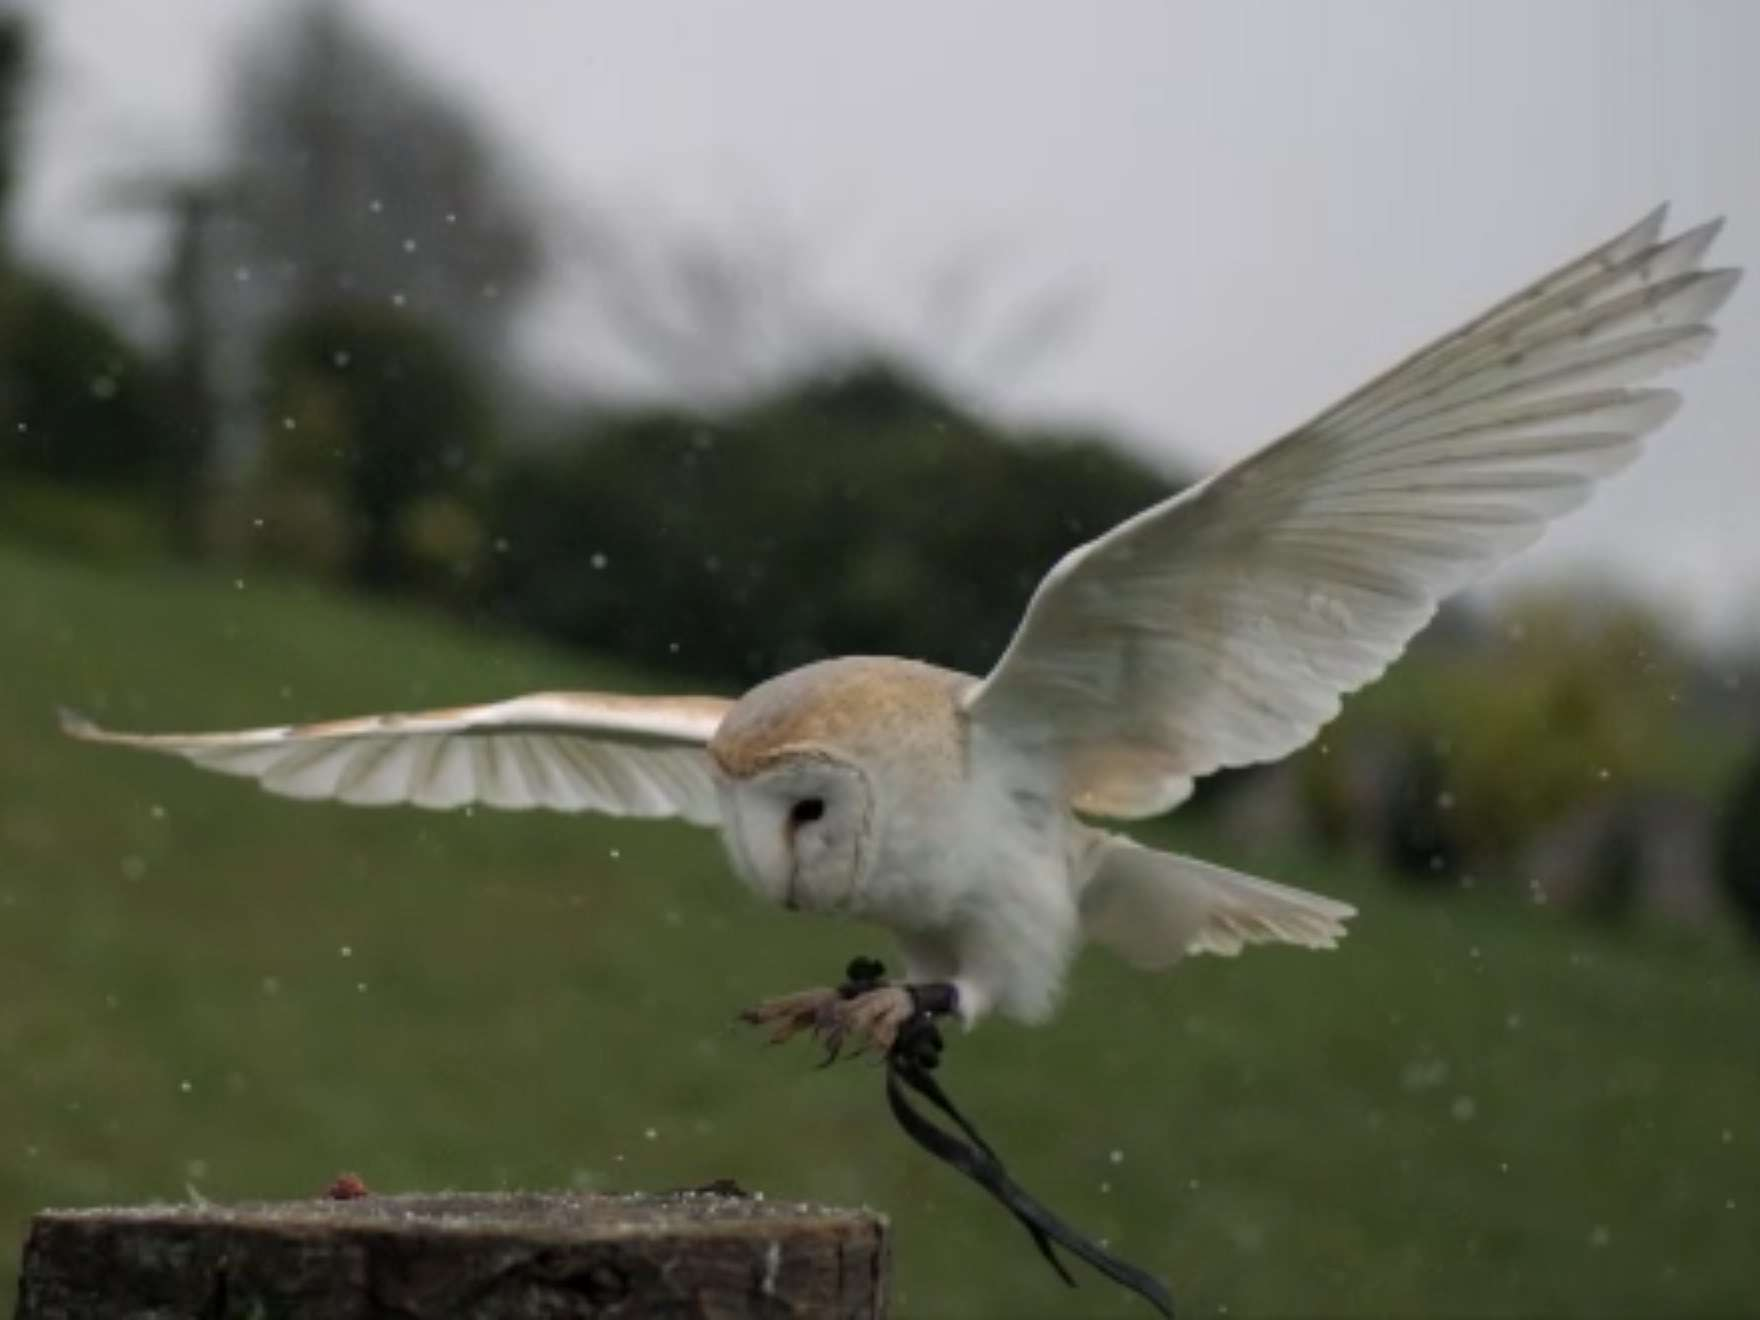 a still from a video that shows an owl landing